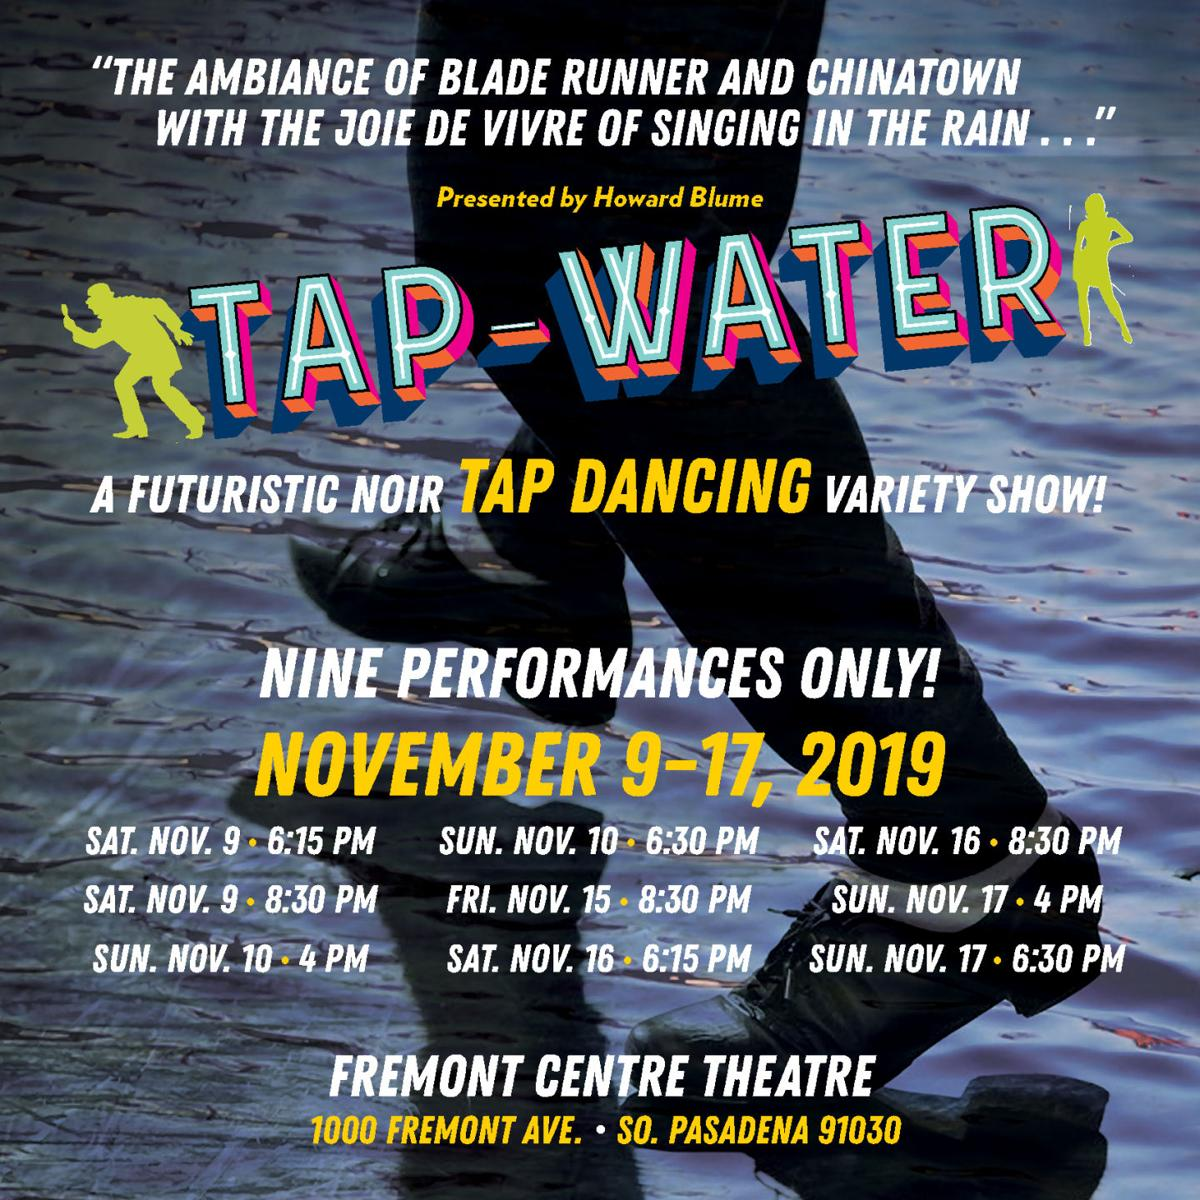 """""""Tap-water"""" A Futuristic Noir Tap Dancing Variety Show"""